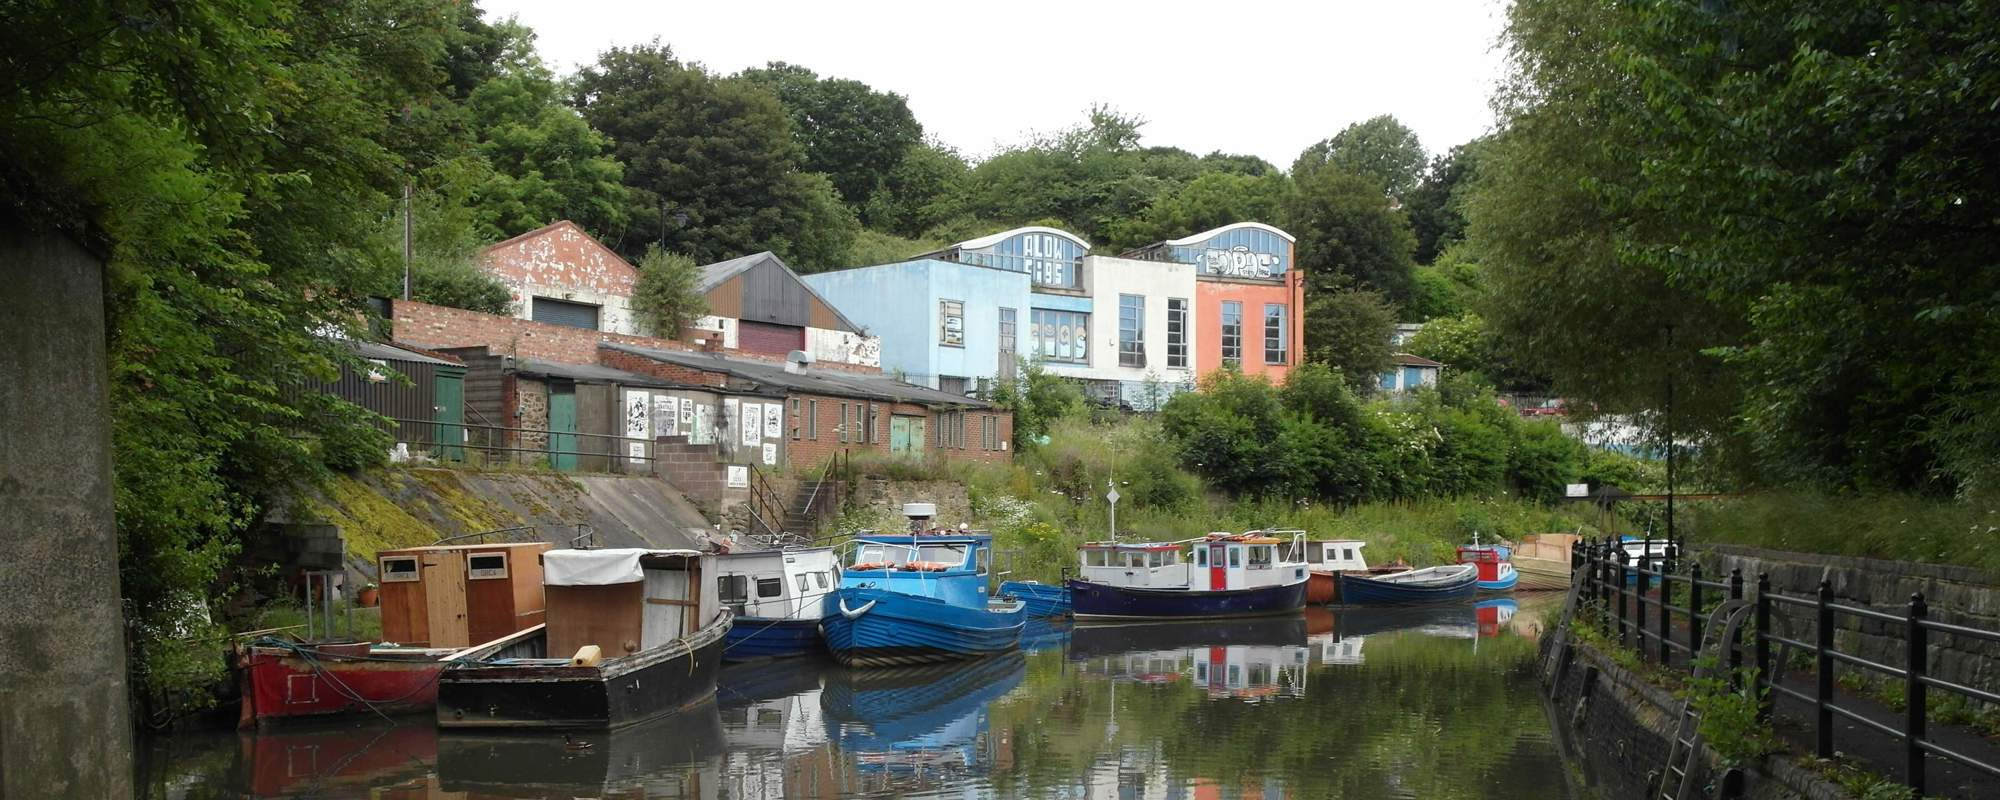 boats on ouseburn river